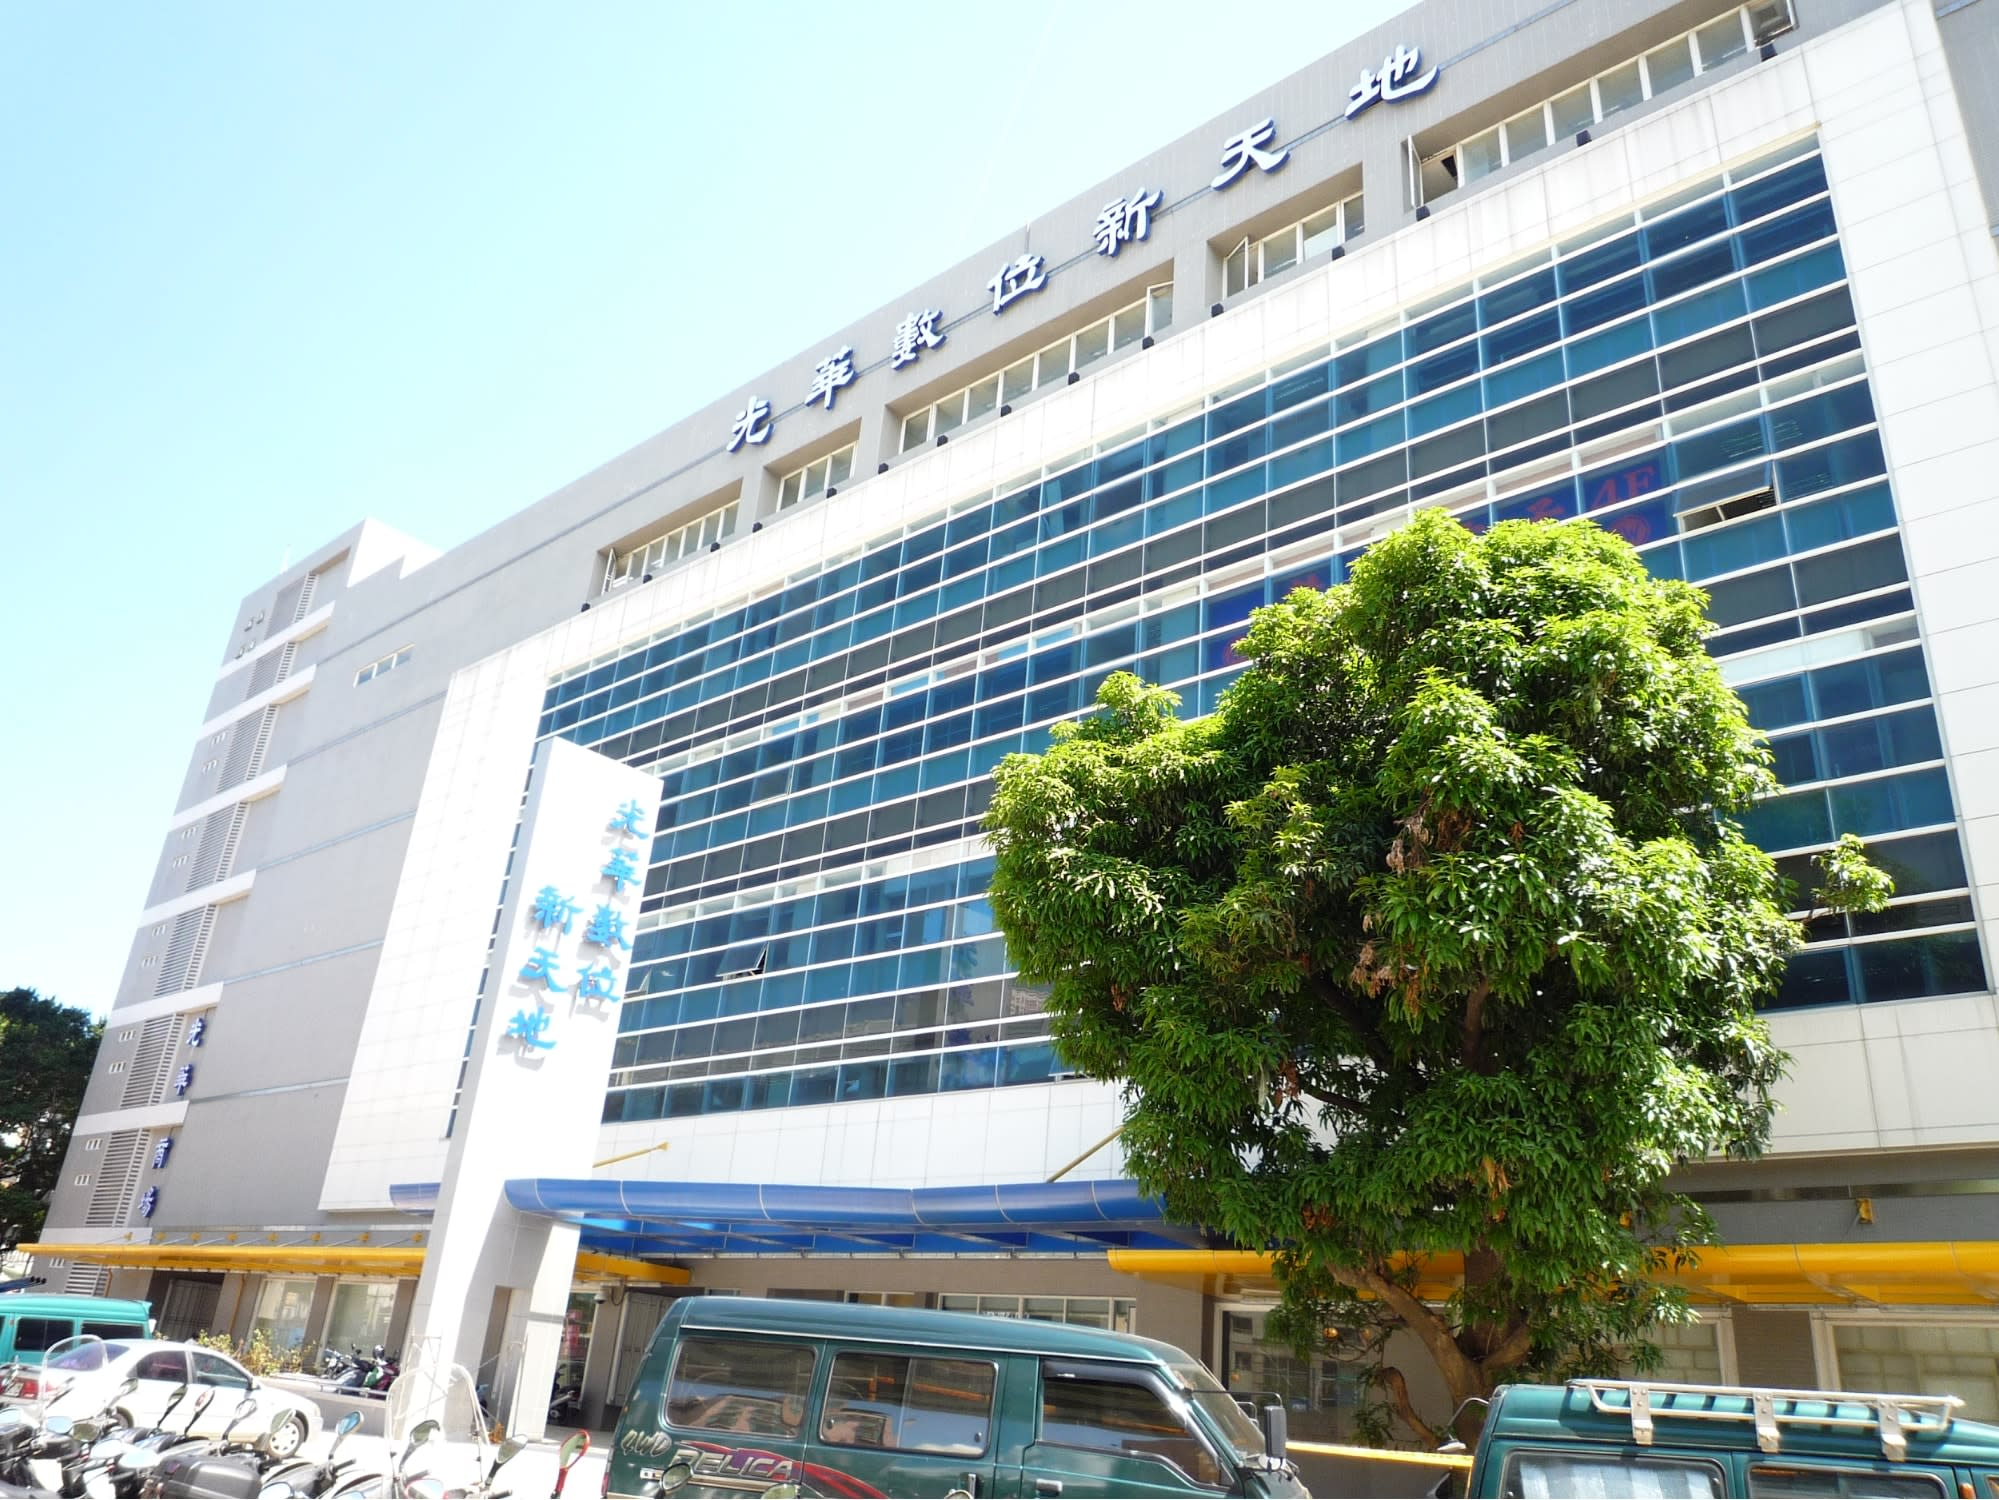 46b38424c8817 If you re not into apparel and rather shop for gadgets then Guanghua Market  is the place for you. This six story building has a mind-boggling range of  ...